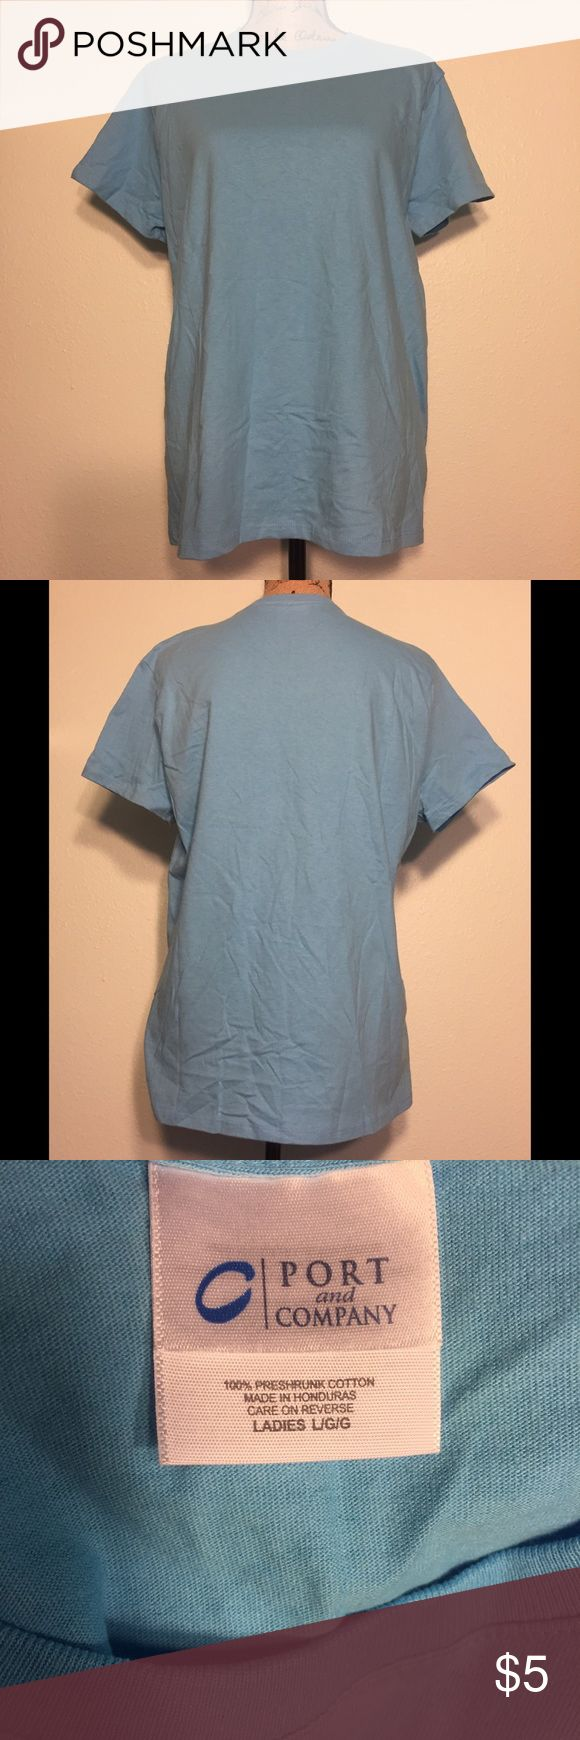 👚NWOT - Ladies Blank Crew Neck S/S Tee 👚Ladies Blank Crew Neck S/S Tee 100% Cotton. Color sky blue.  Leftover blank. No tags, but brand new. Perfect Condition.                                             Blank and promotional tee bundle deal.  Buy 2 For $7 Buy 3 For $9 Buy 4 For $11 Buy 5 For $13 Buy 6 For $15 Look for any listing with either of these symbols 👚👕. Bundle them and make me an offer for the prices above.  They make great work tees, craft projects, or just a great basic for…